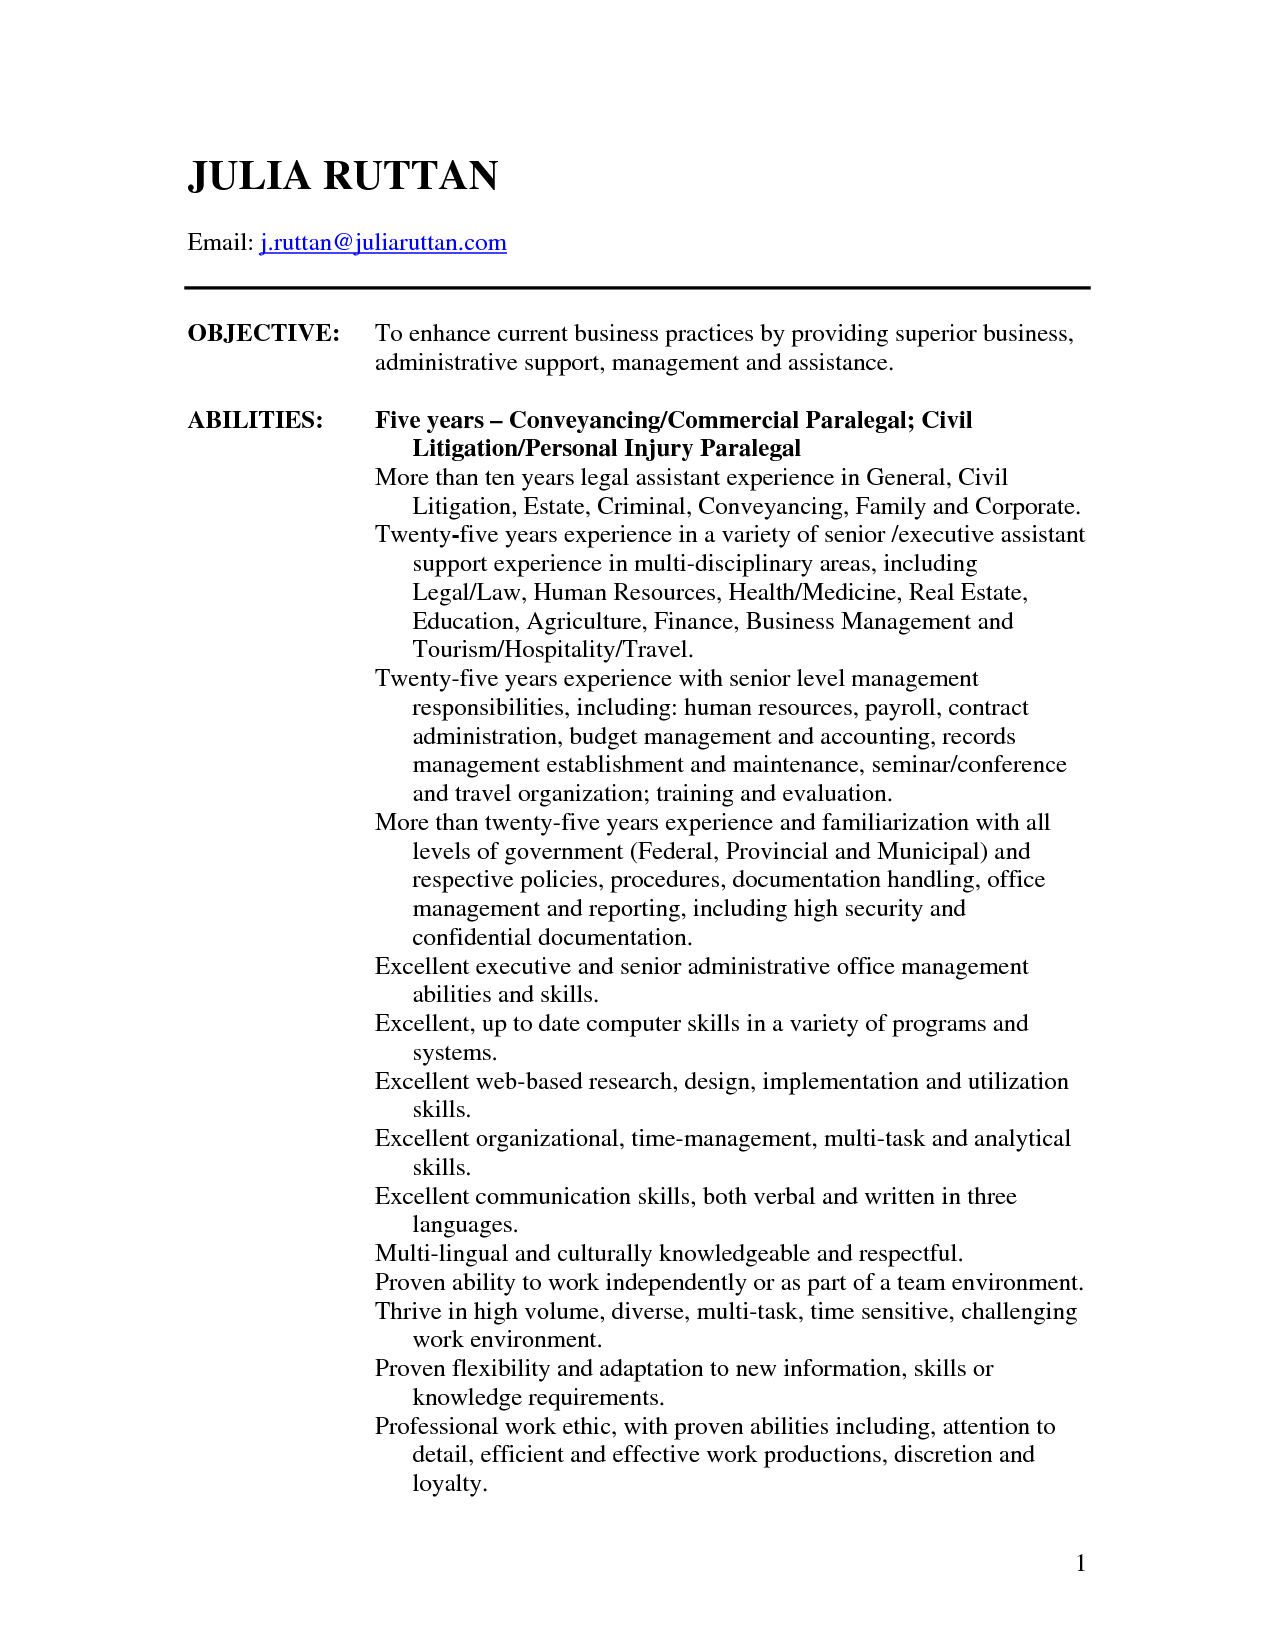 legal assistant resume samples legal assistant resume legal